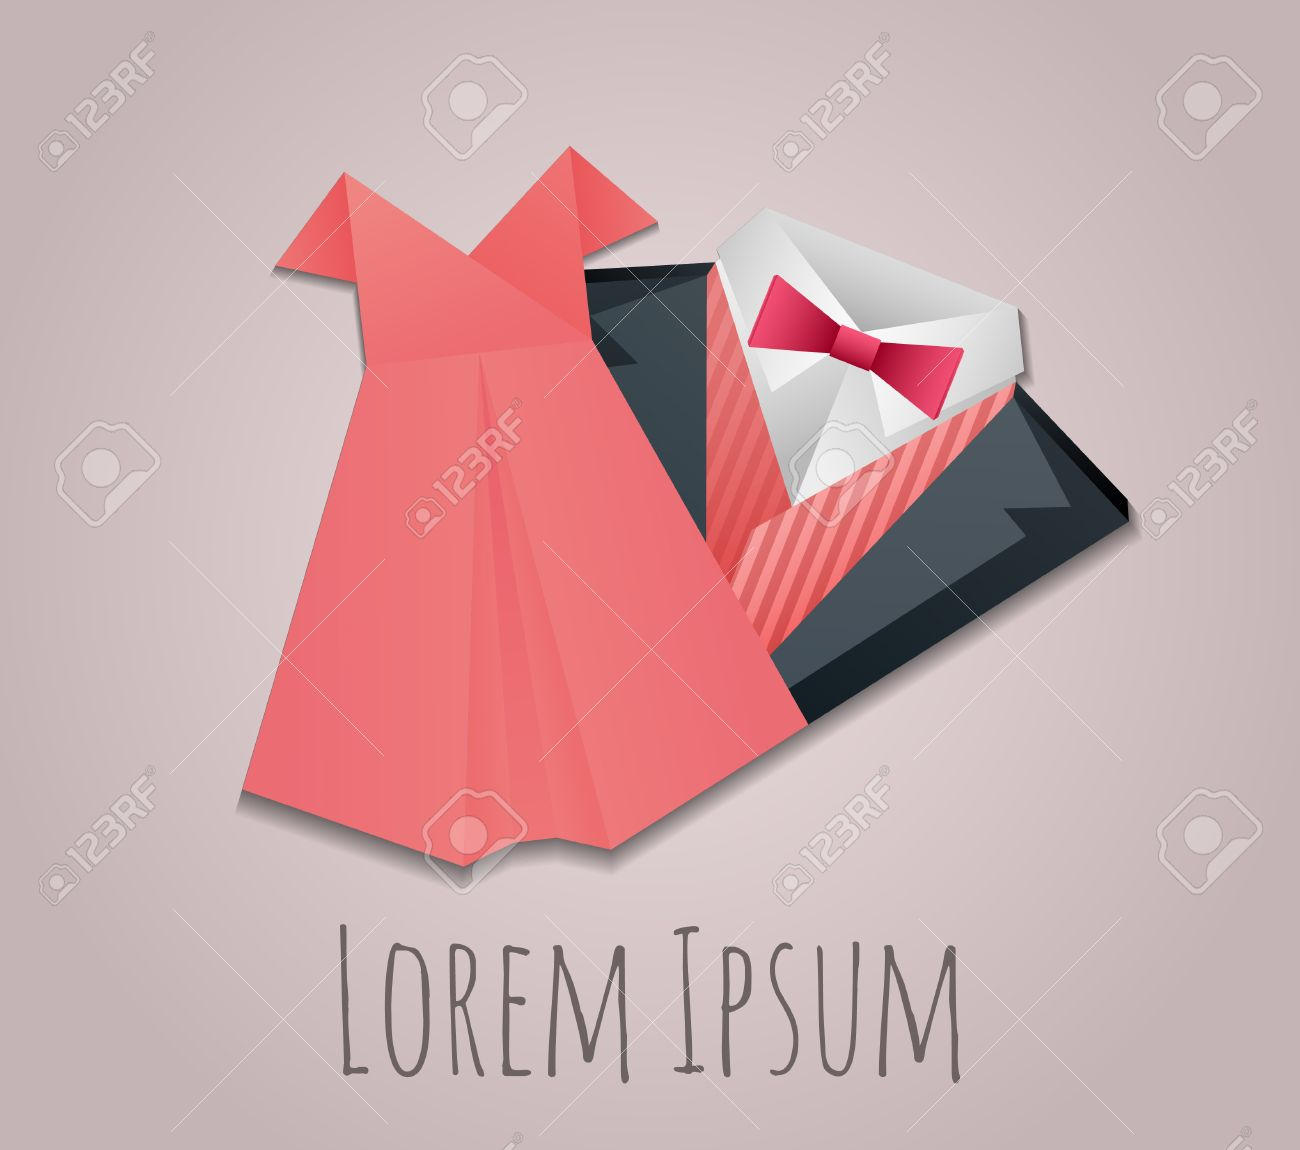 Illustration Of Origami Mens Suit And Lady Dress For Logos Your Design Stock Vector